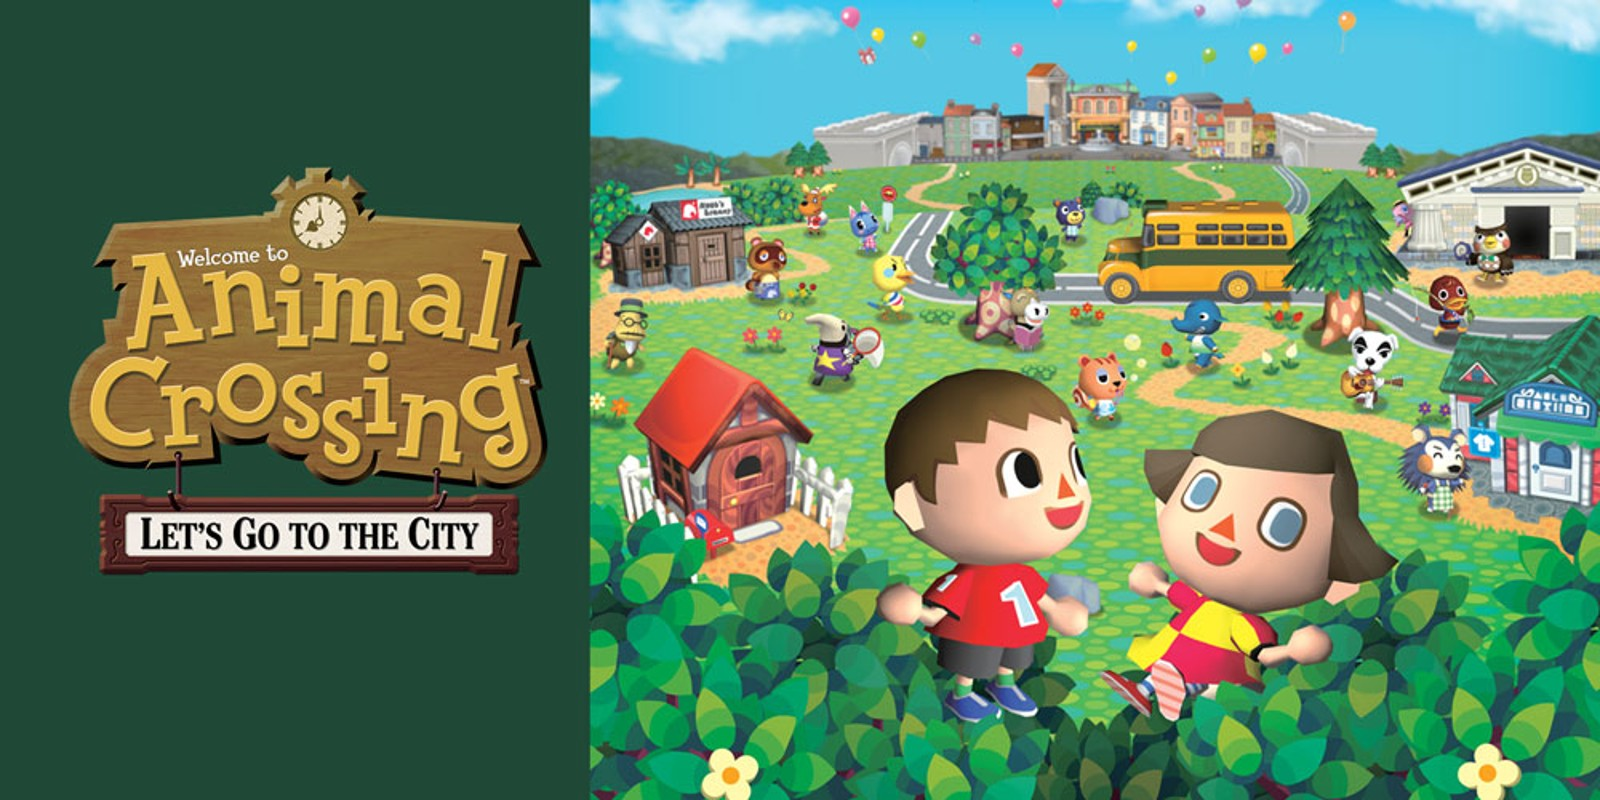 Animal Crossing Wild World Wallpaper Animal Crossing Let S Go To The City Wii Jeux Nintendo